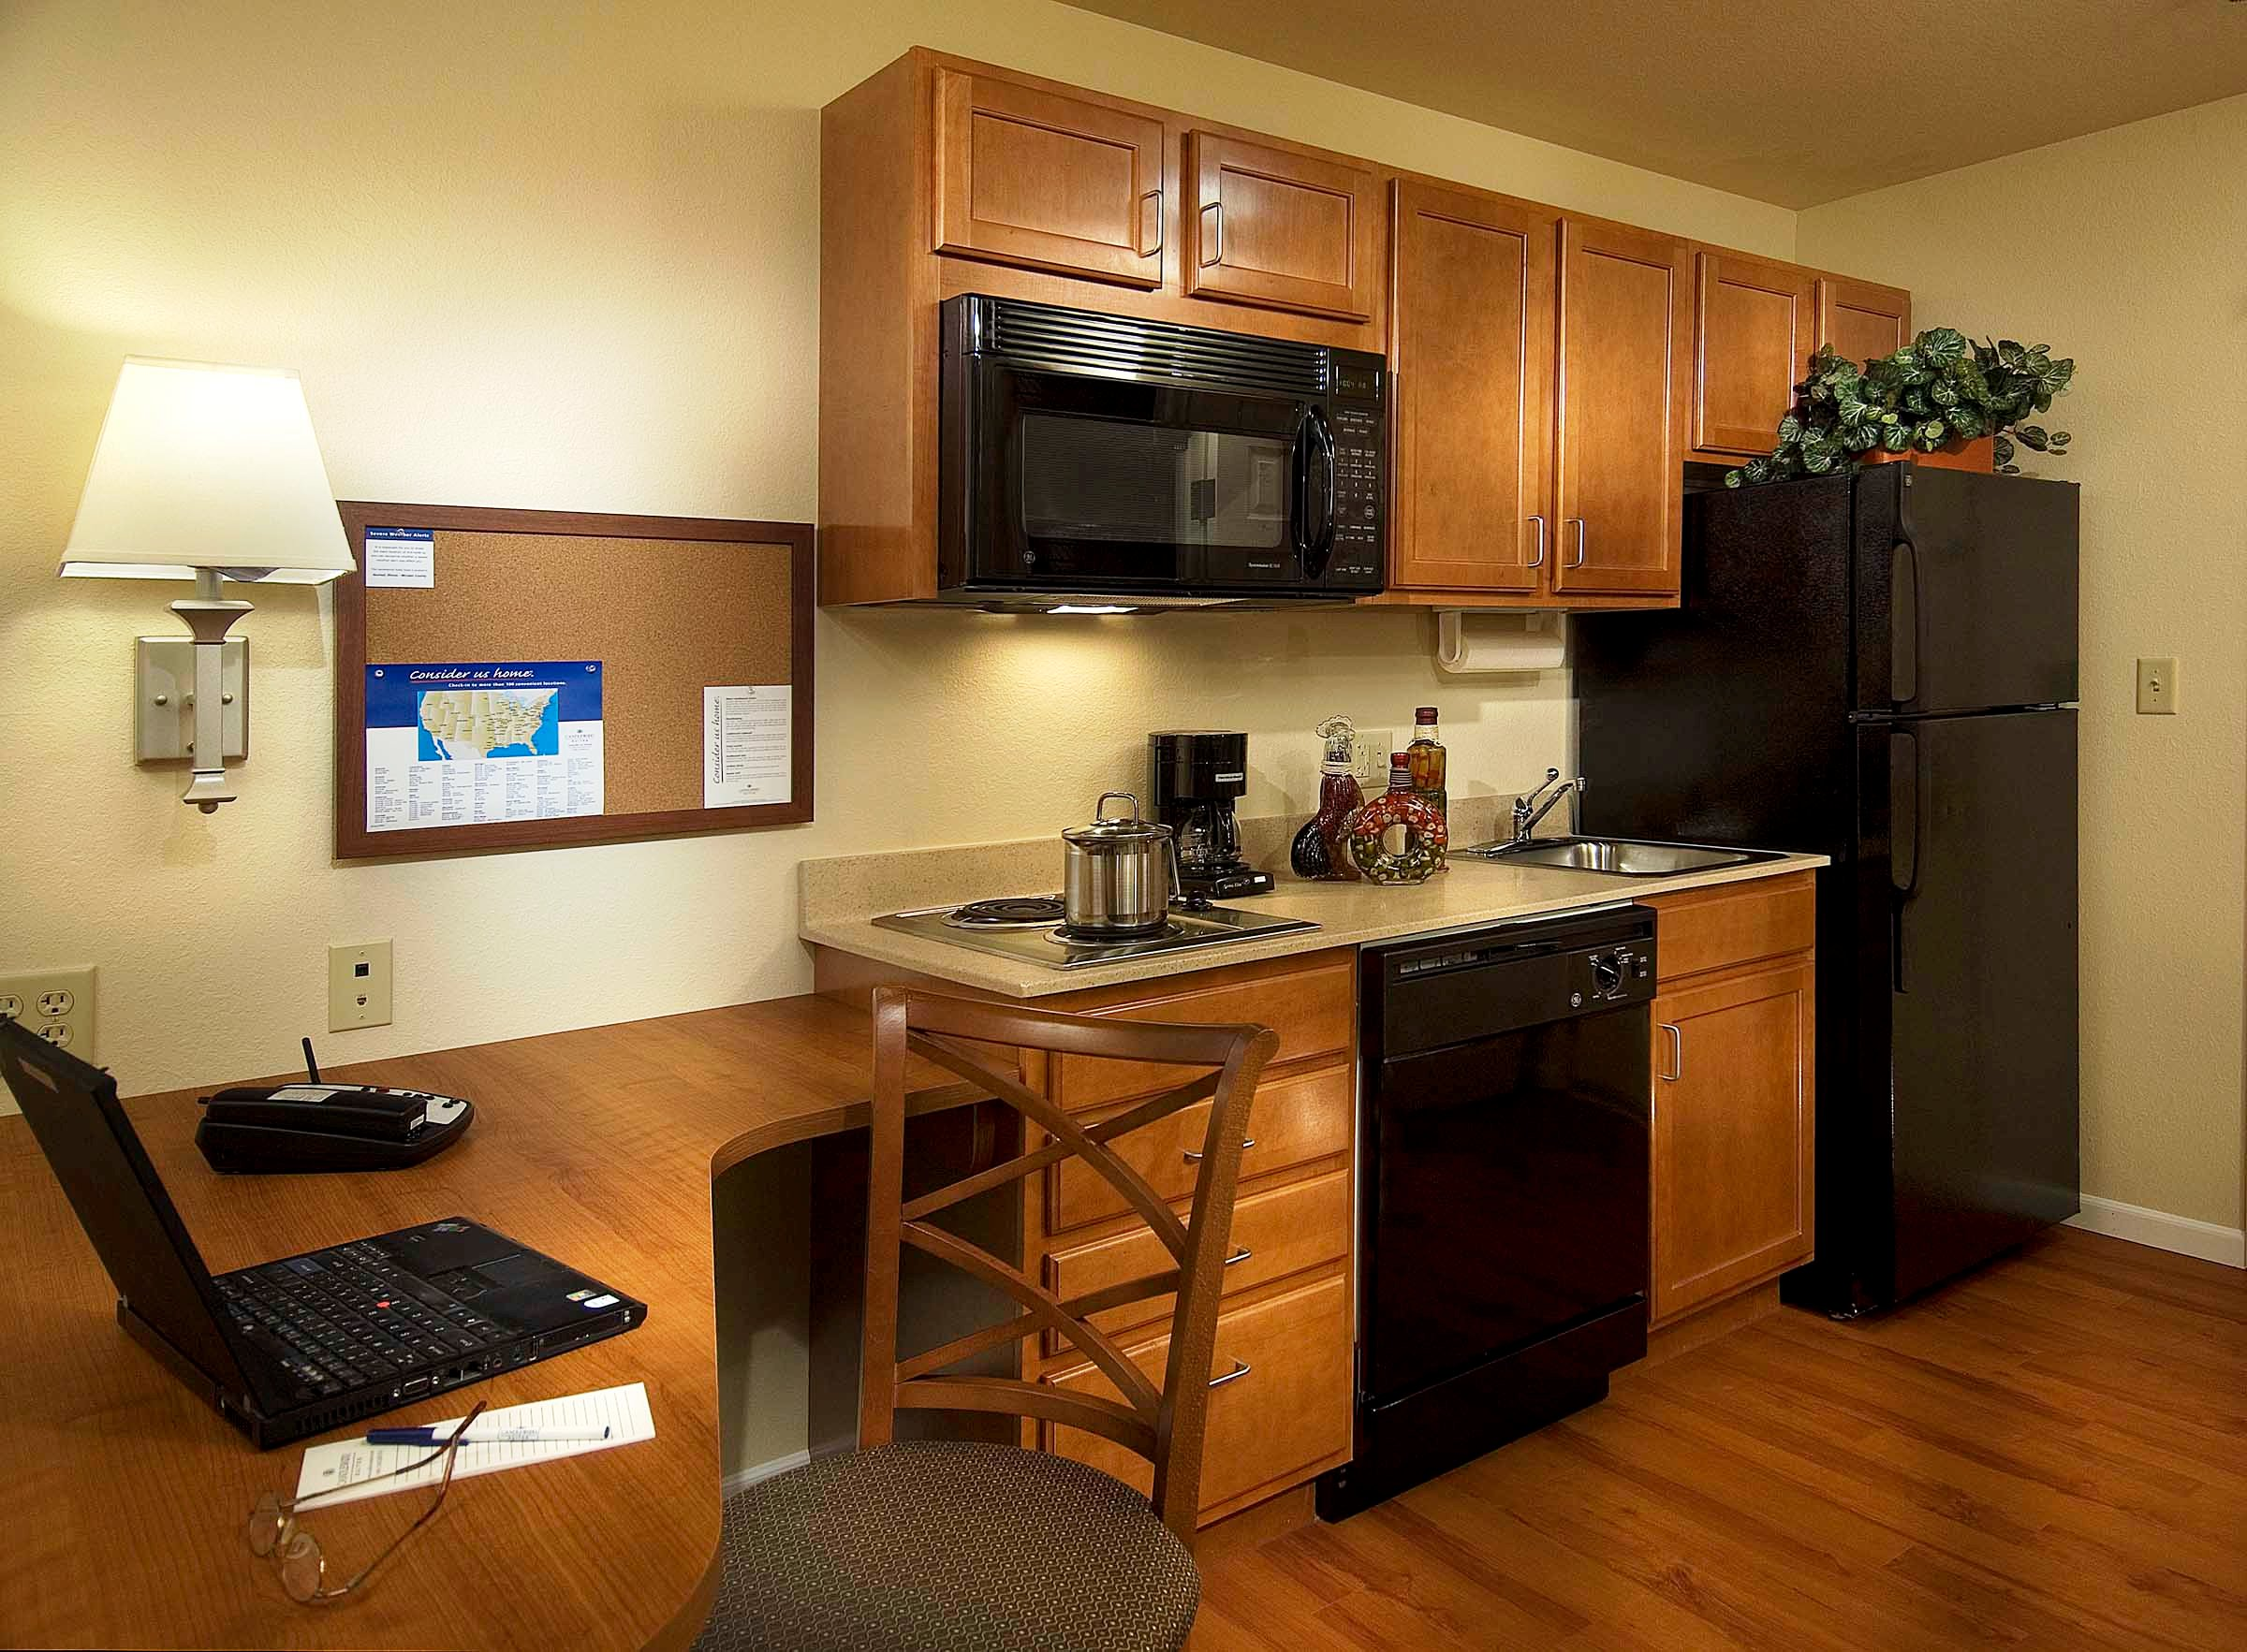 hotels honolulu kitchens image hotel house kitchen best awesome in with of rooms